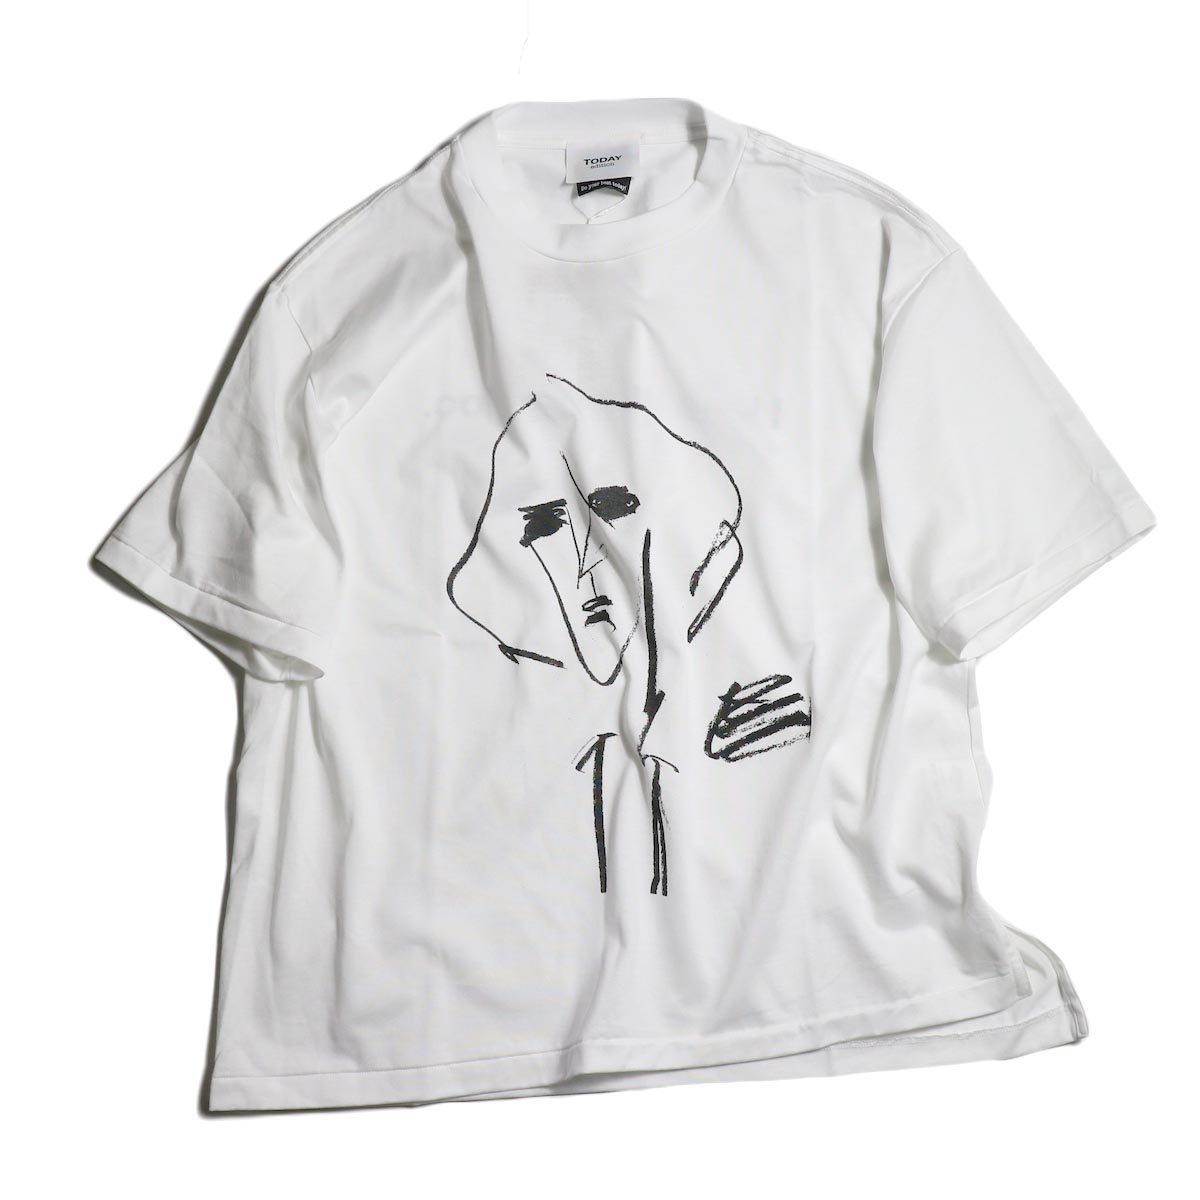 TODAY edition / drawing tee #3 -White